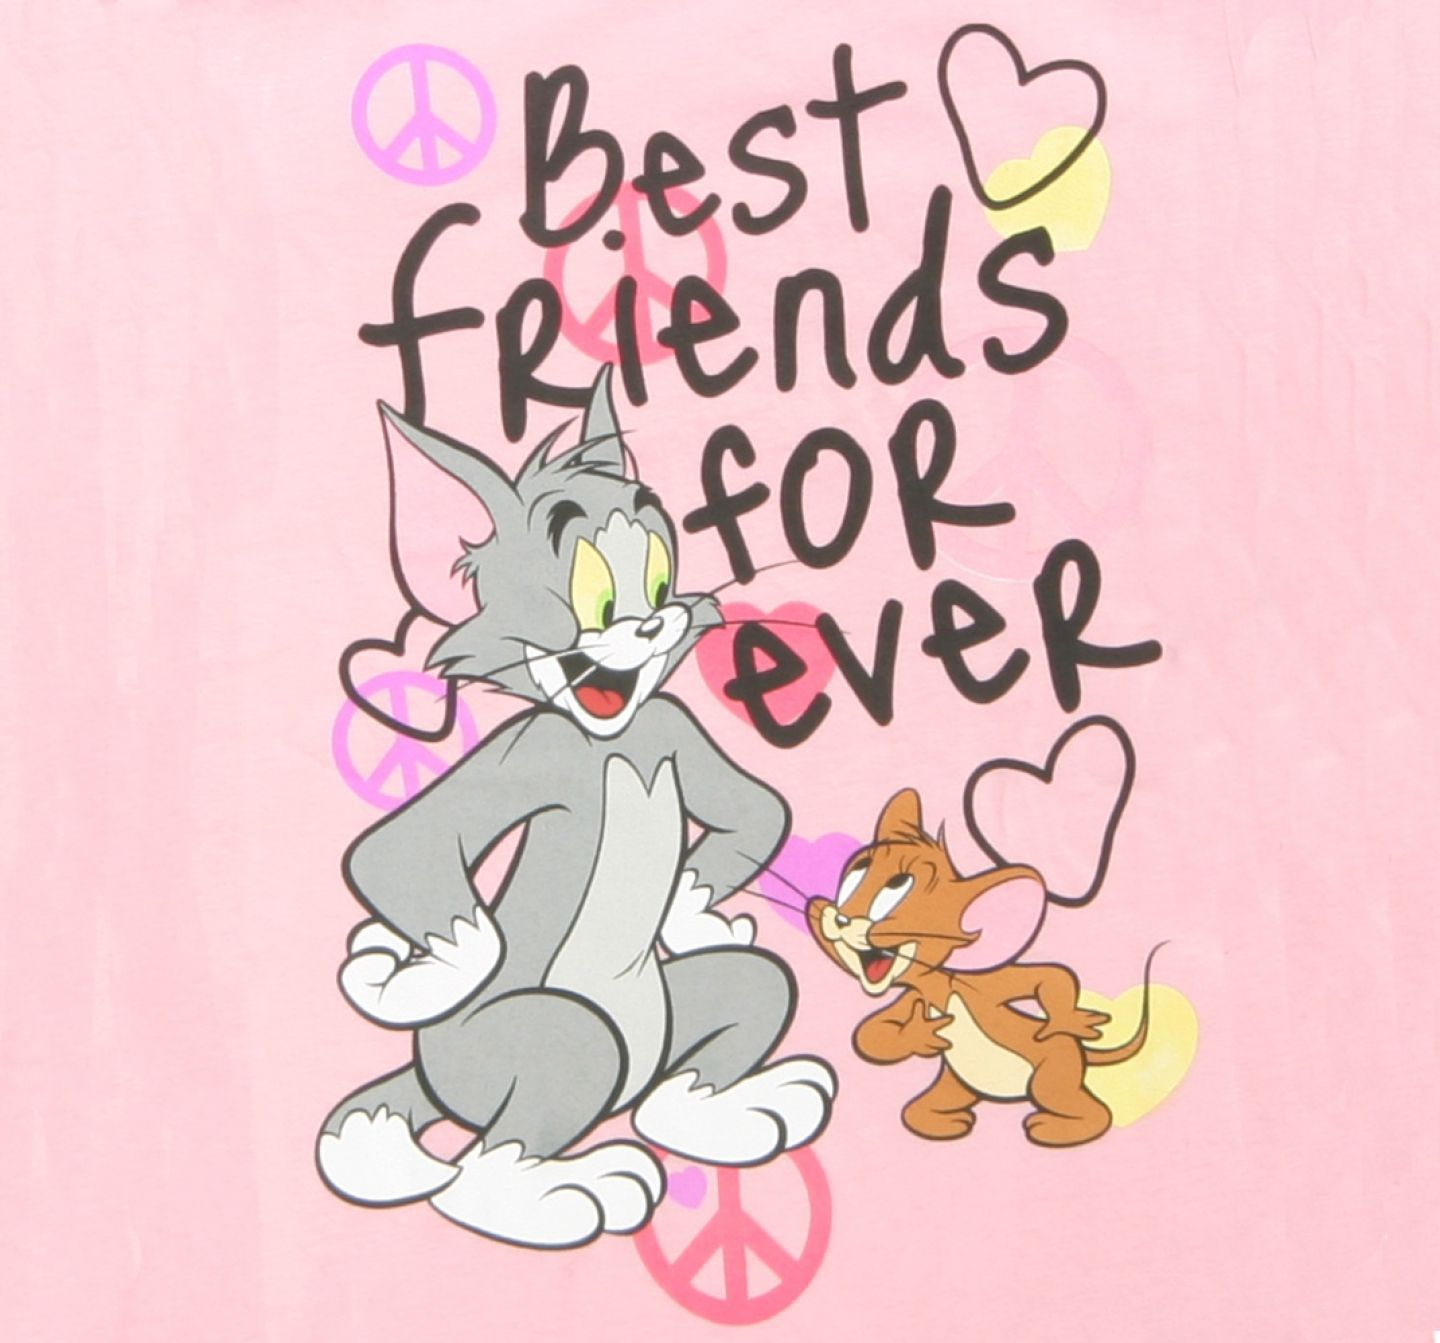 Tom And Jerry Friends Forever Wallpapers High Definition Happy Friendship Day Images Tom And Jerry Wallpapers Friendship Day Images